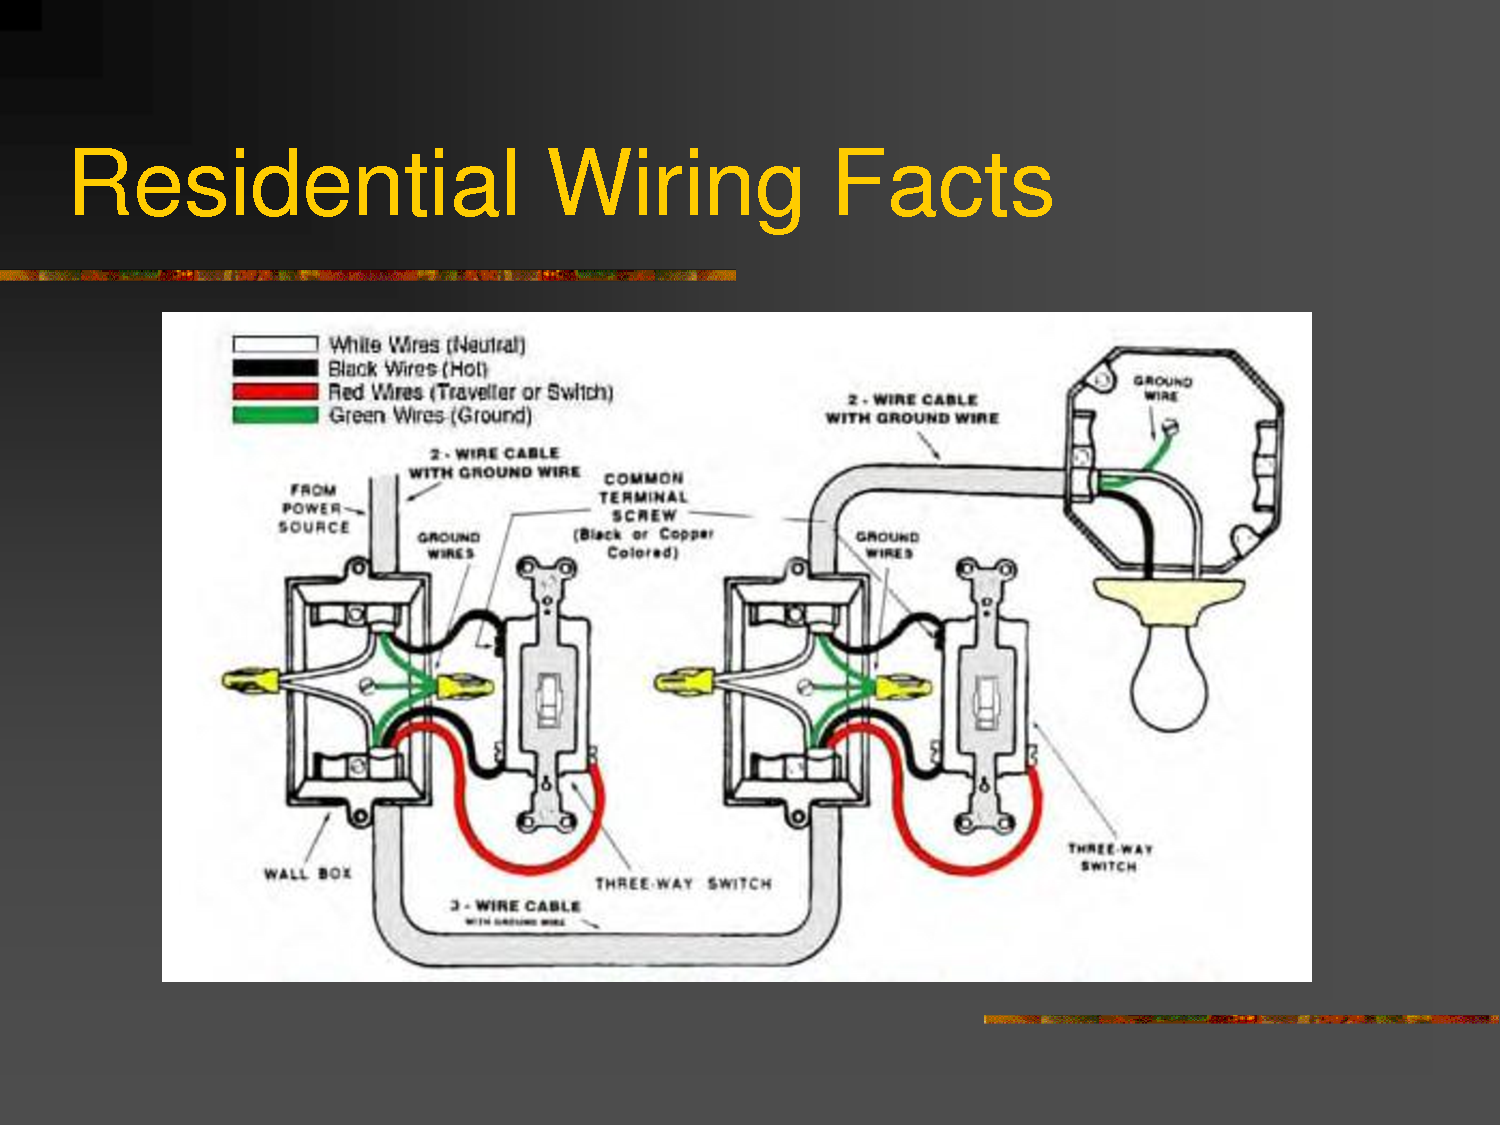 4 Best Images of Residential Wiring Diagrams - House ... Residential Wiring Diagrams on